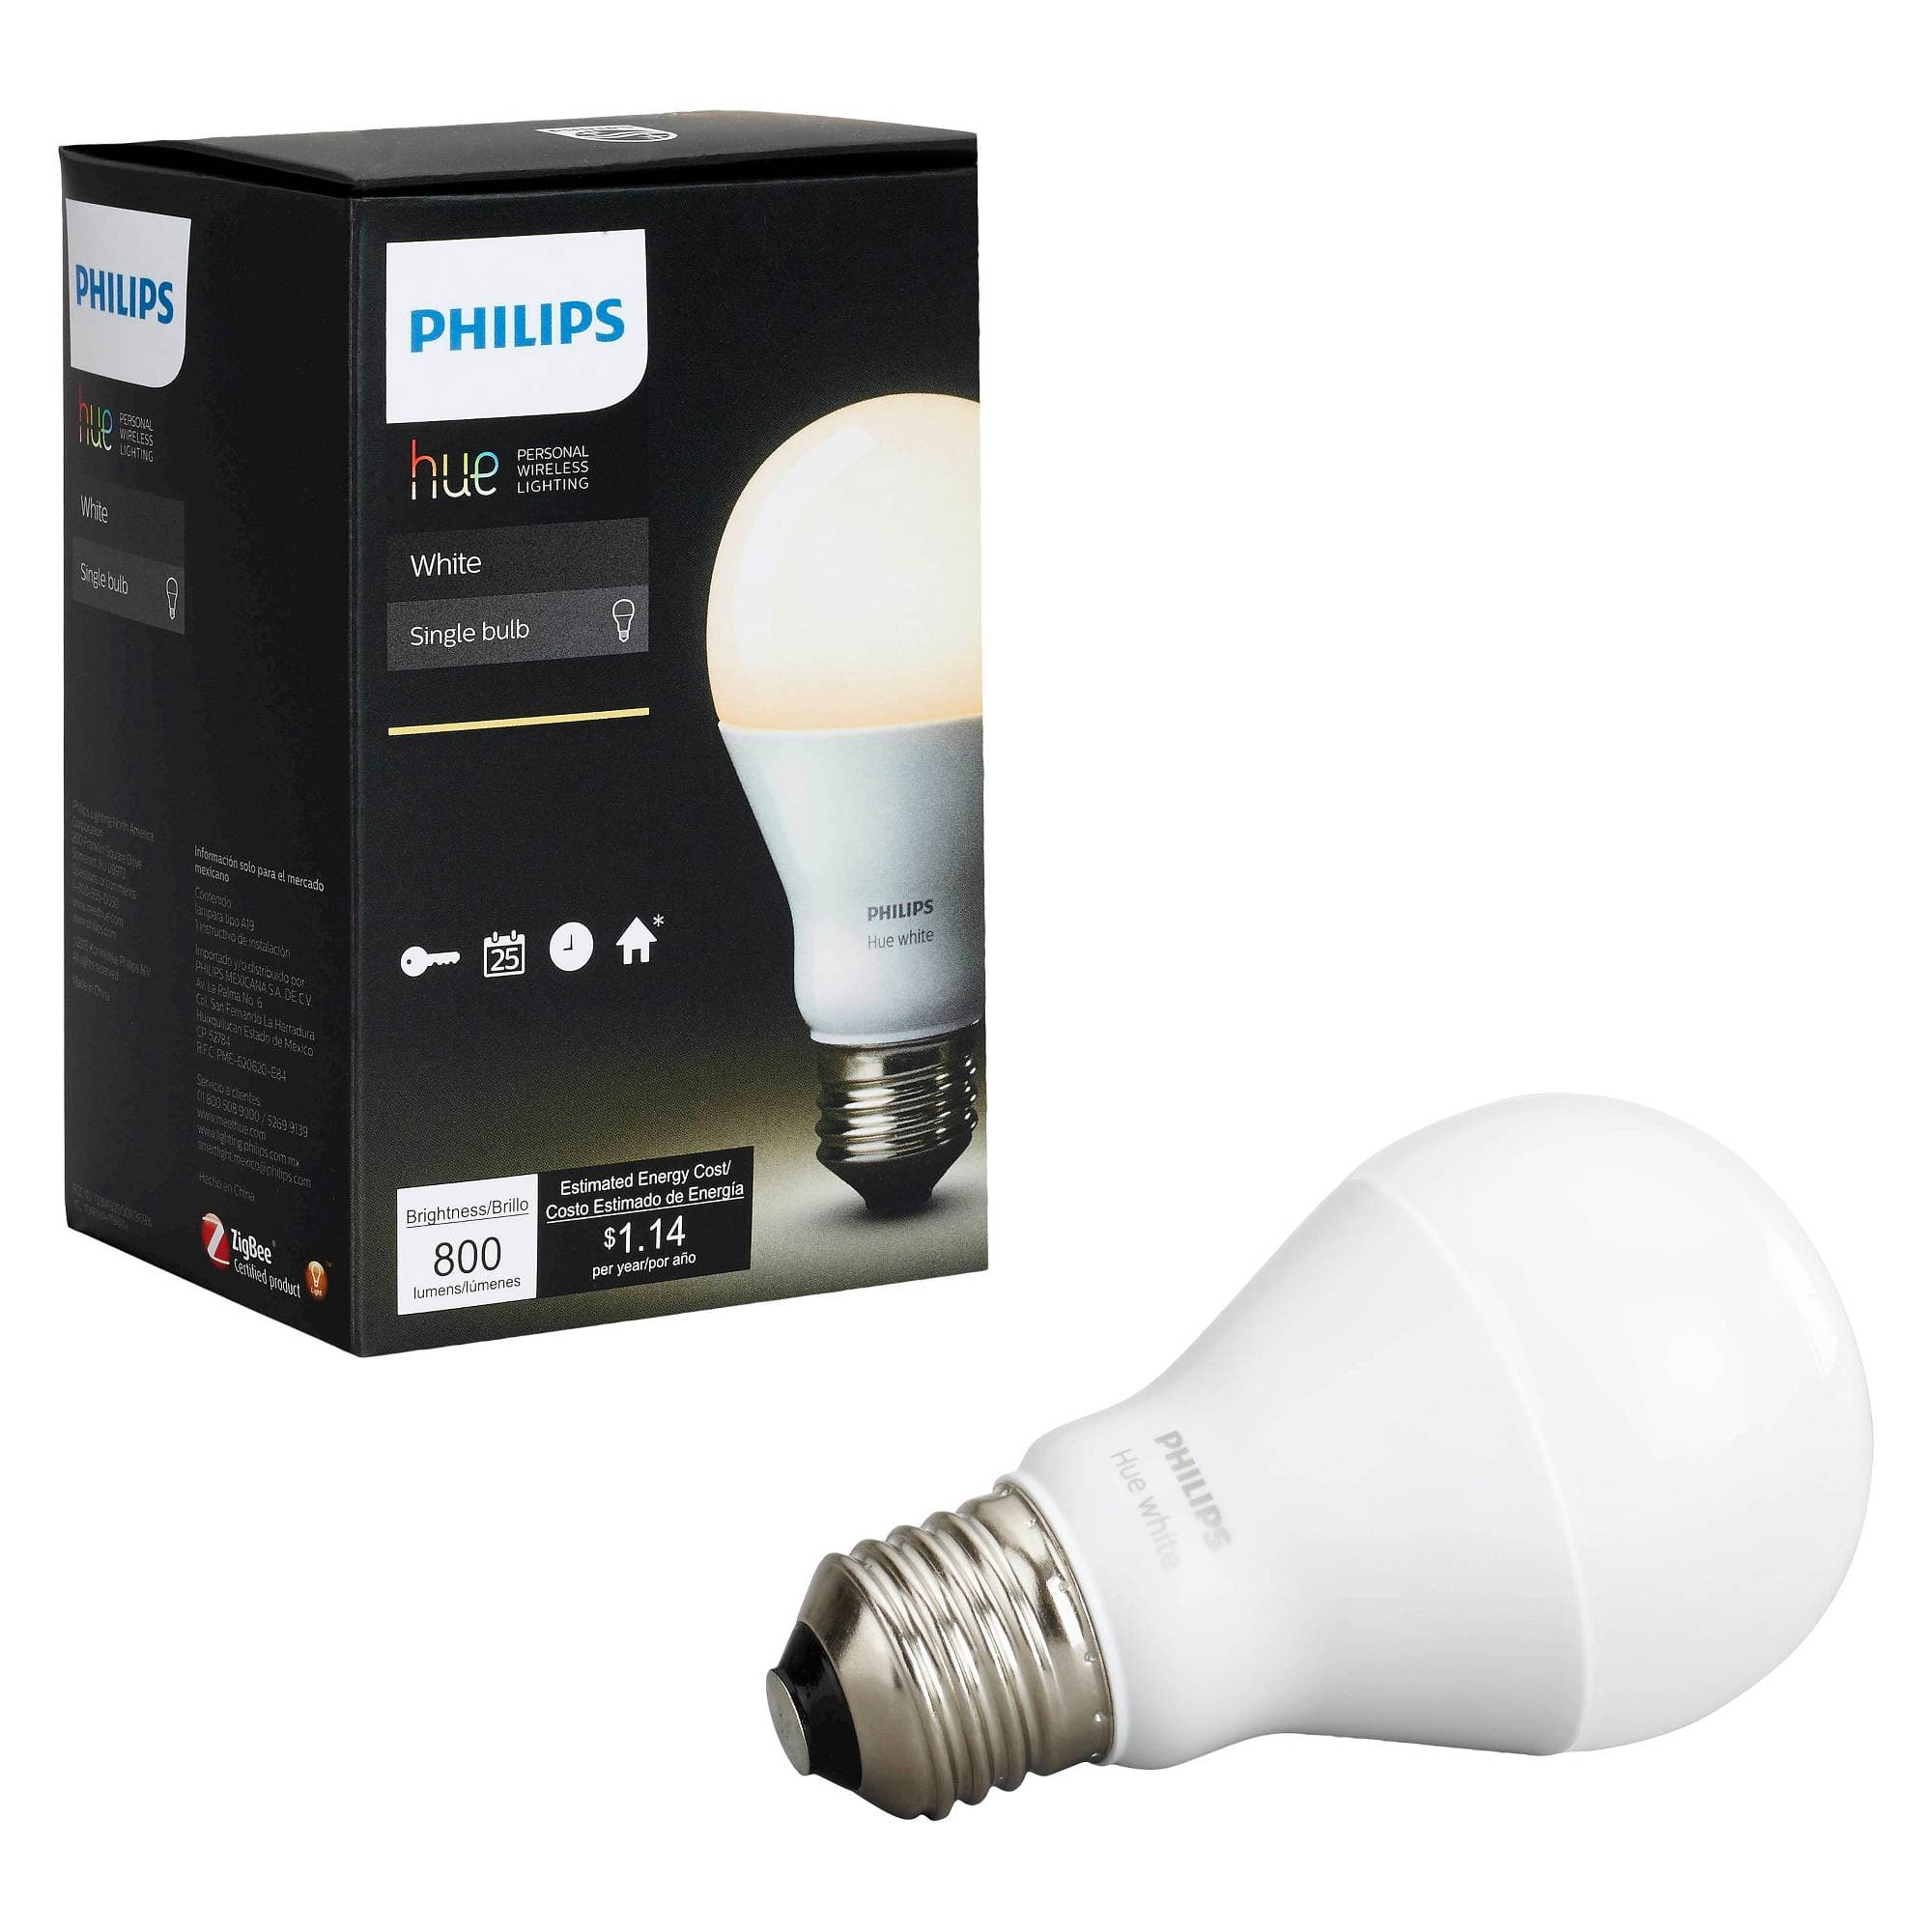 Philips Hue A19 White $7.48 and White & Color Ambiance $24.98 Target Clearance B&M YMMV